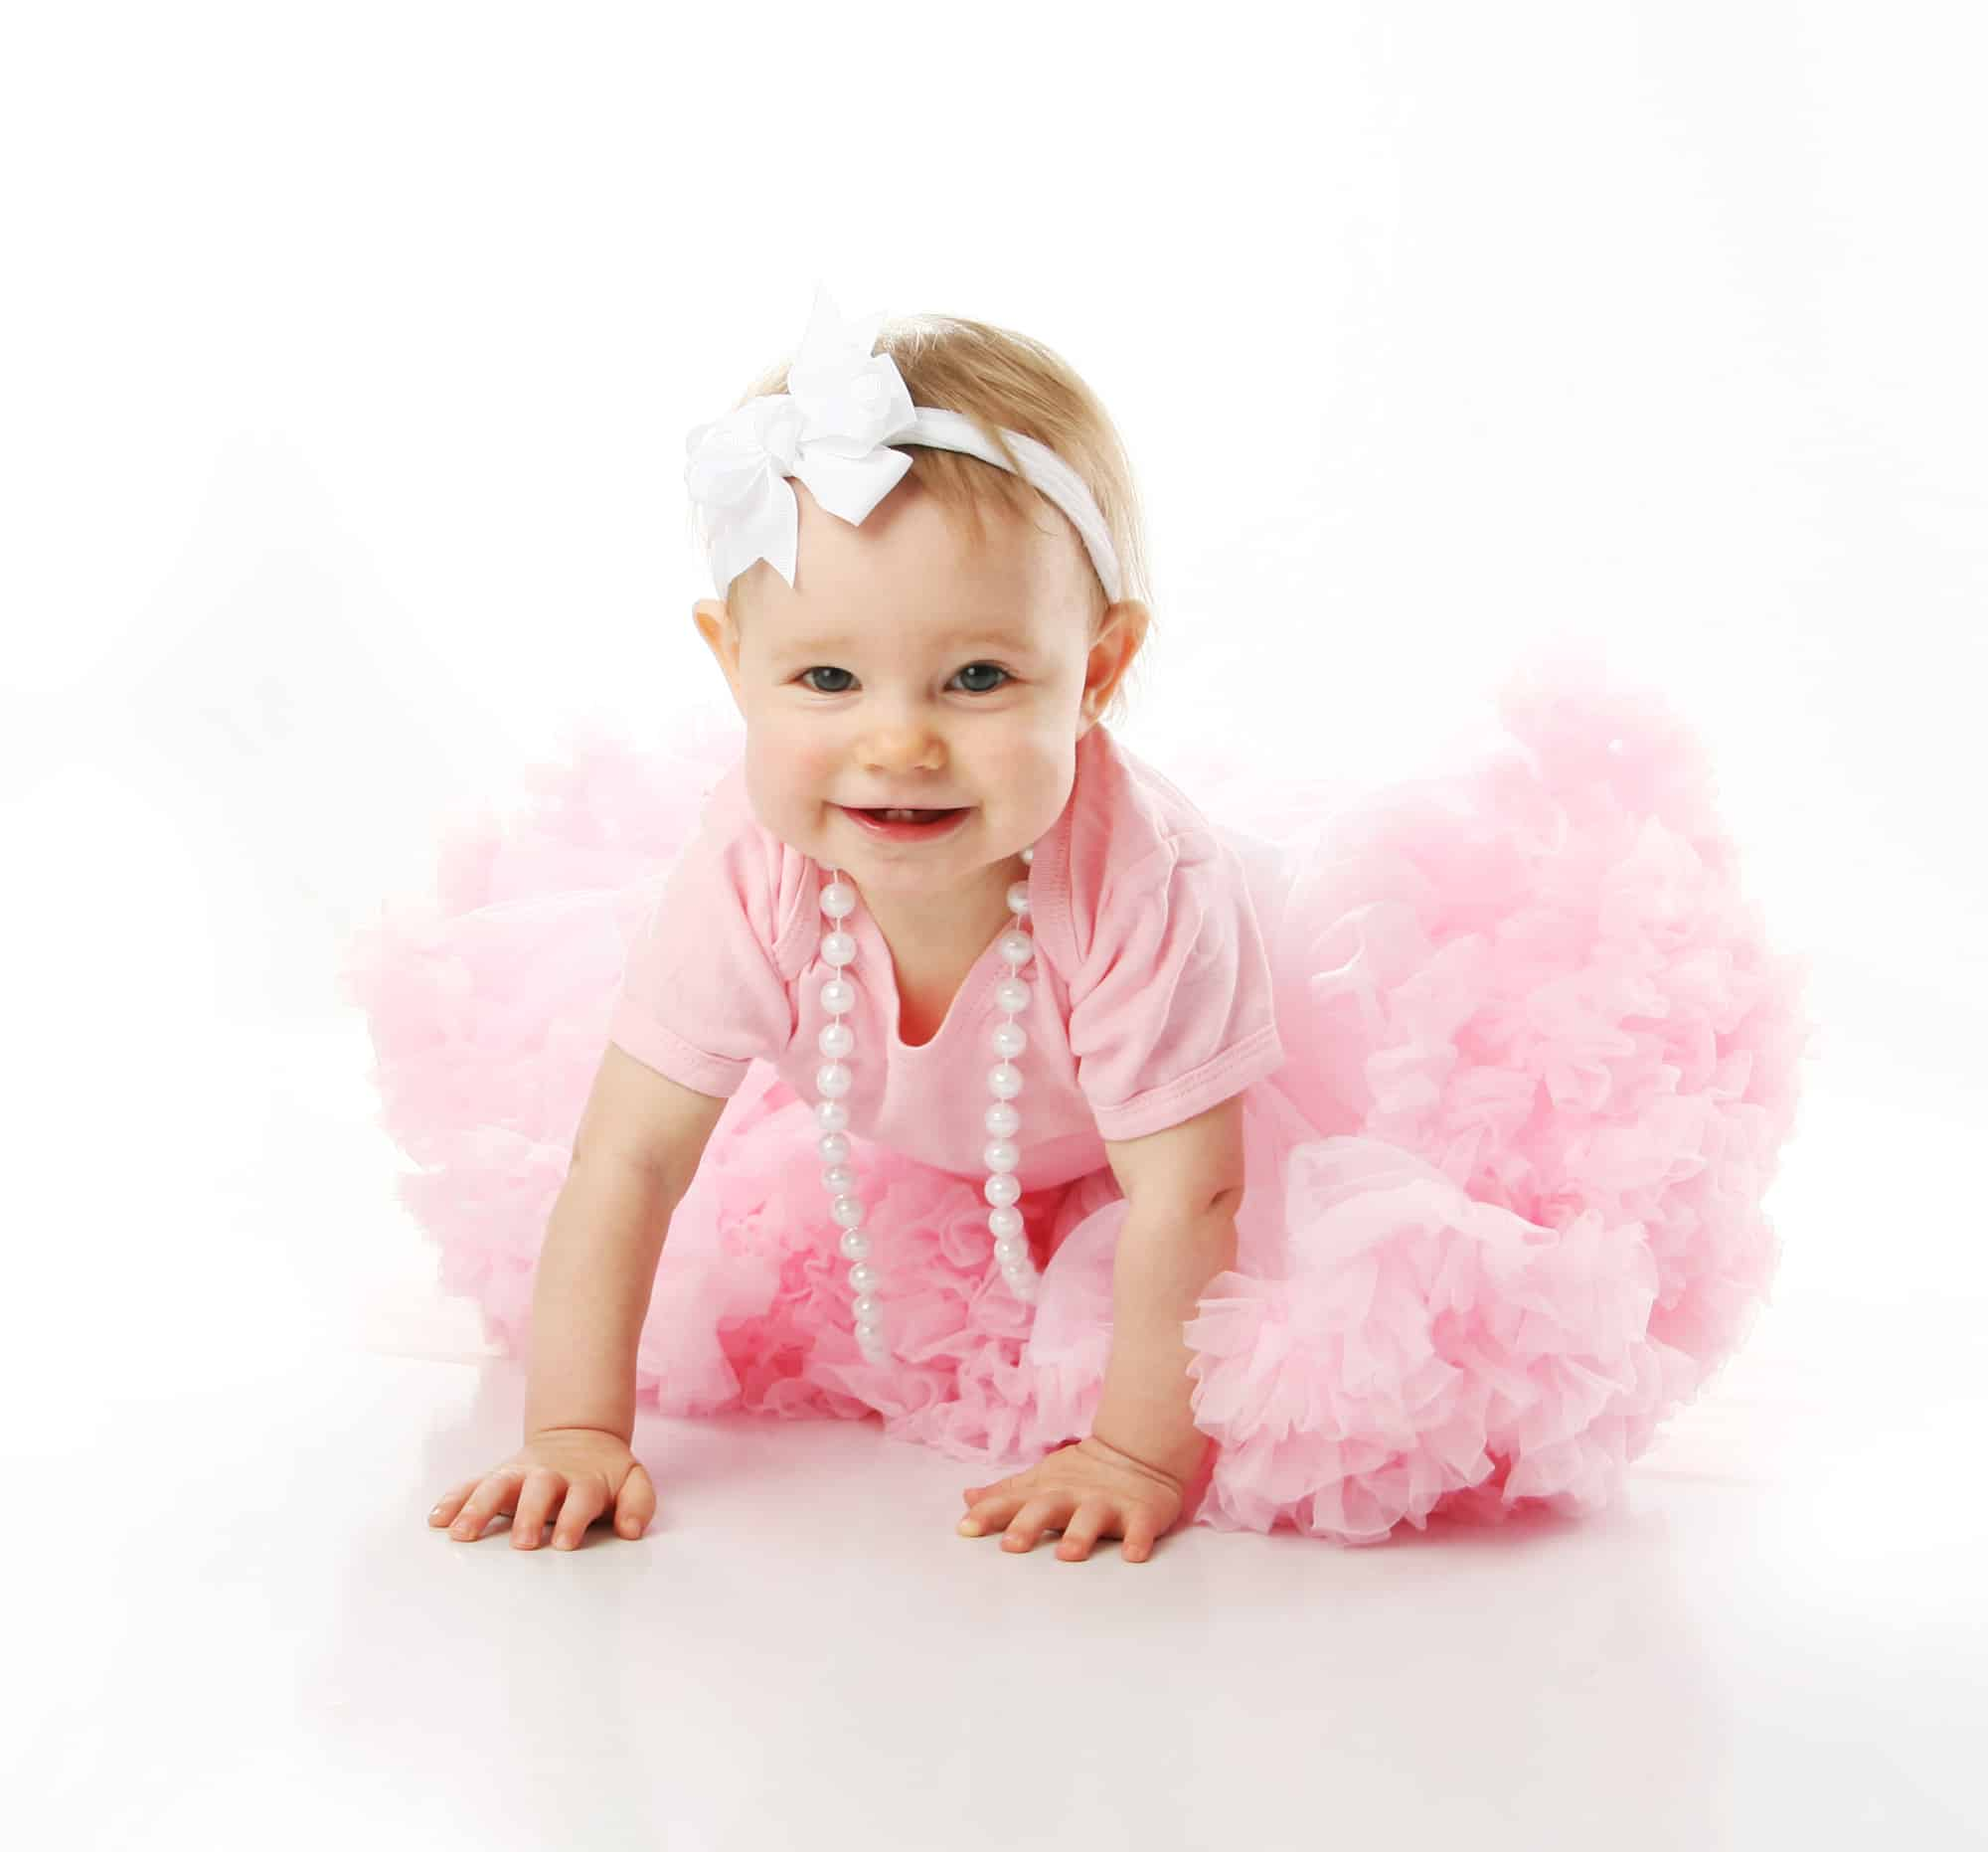 Baby girl crawling while wearing pink tutu